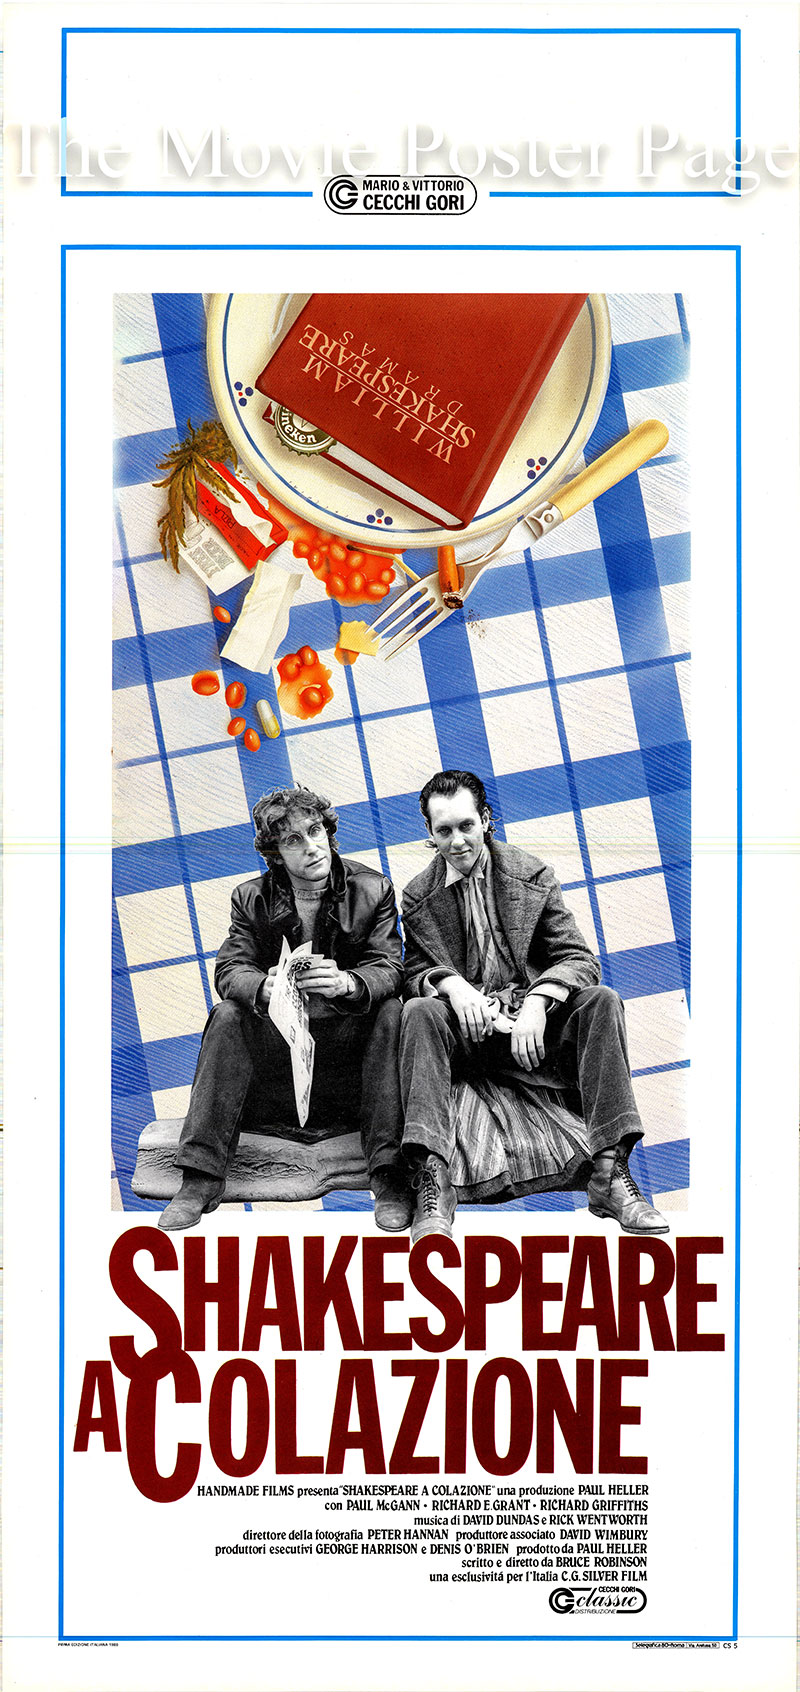 Pictured is an Italian locandina poster for the 1987 Bruce Robinson film Withnail and I starring Richard E. Grant as Withnail.